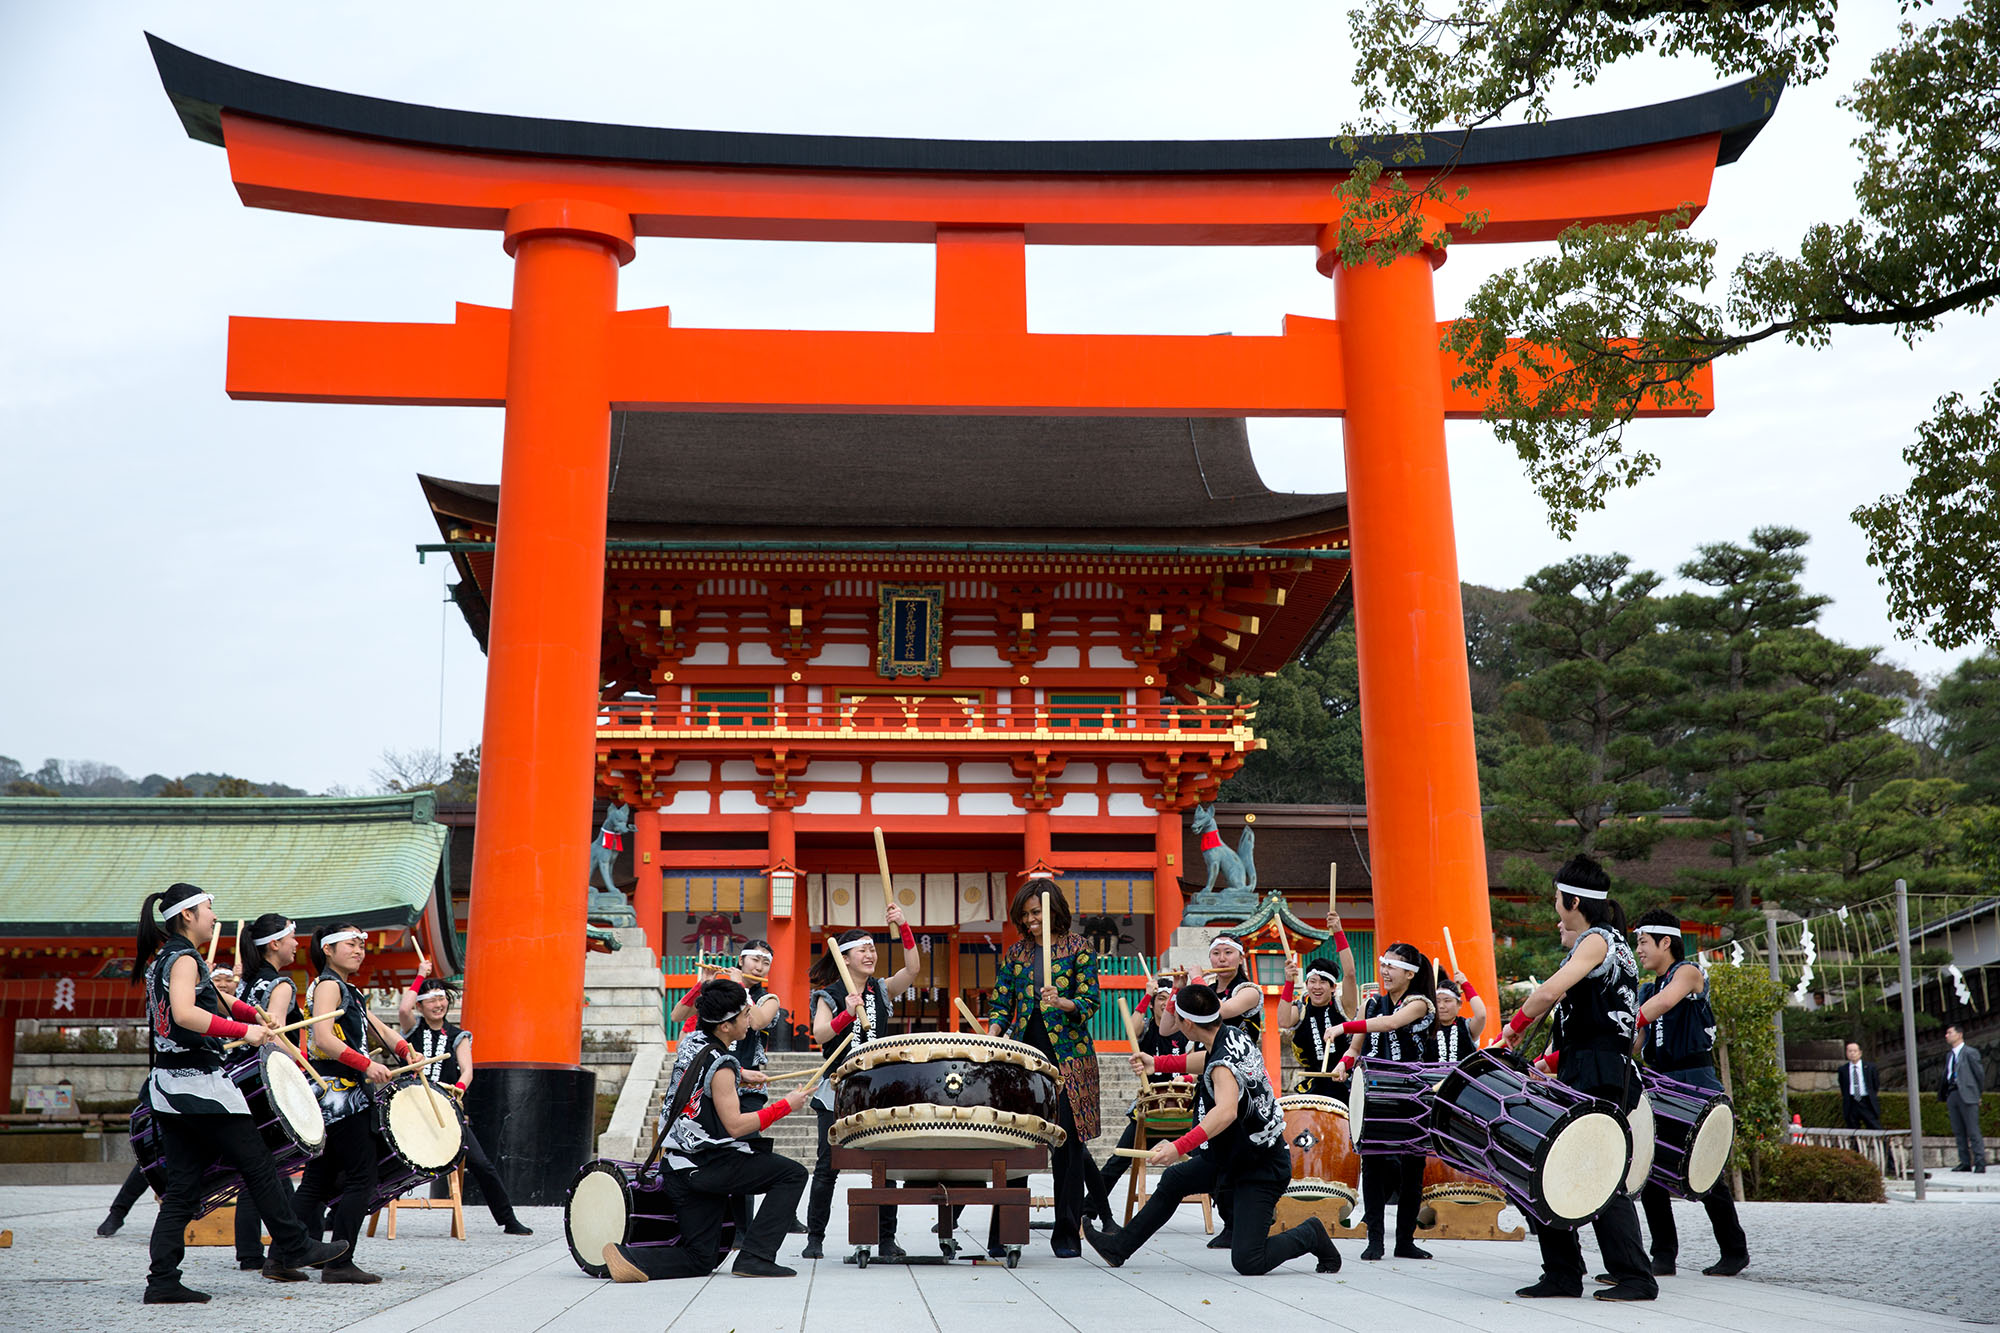 Taiko drummers perform with the First Lady at Fushimi Inari Shinto Shrine in Kyoto. (Official White House Photo by Amanda Lucidon)